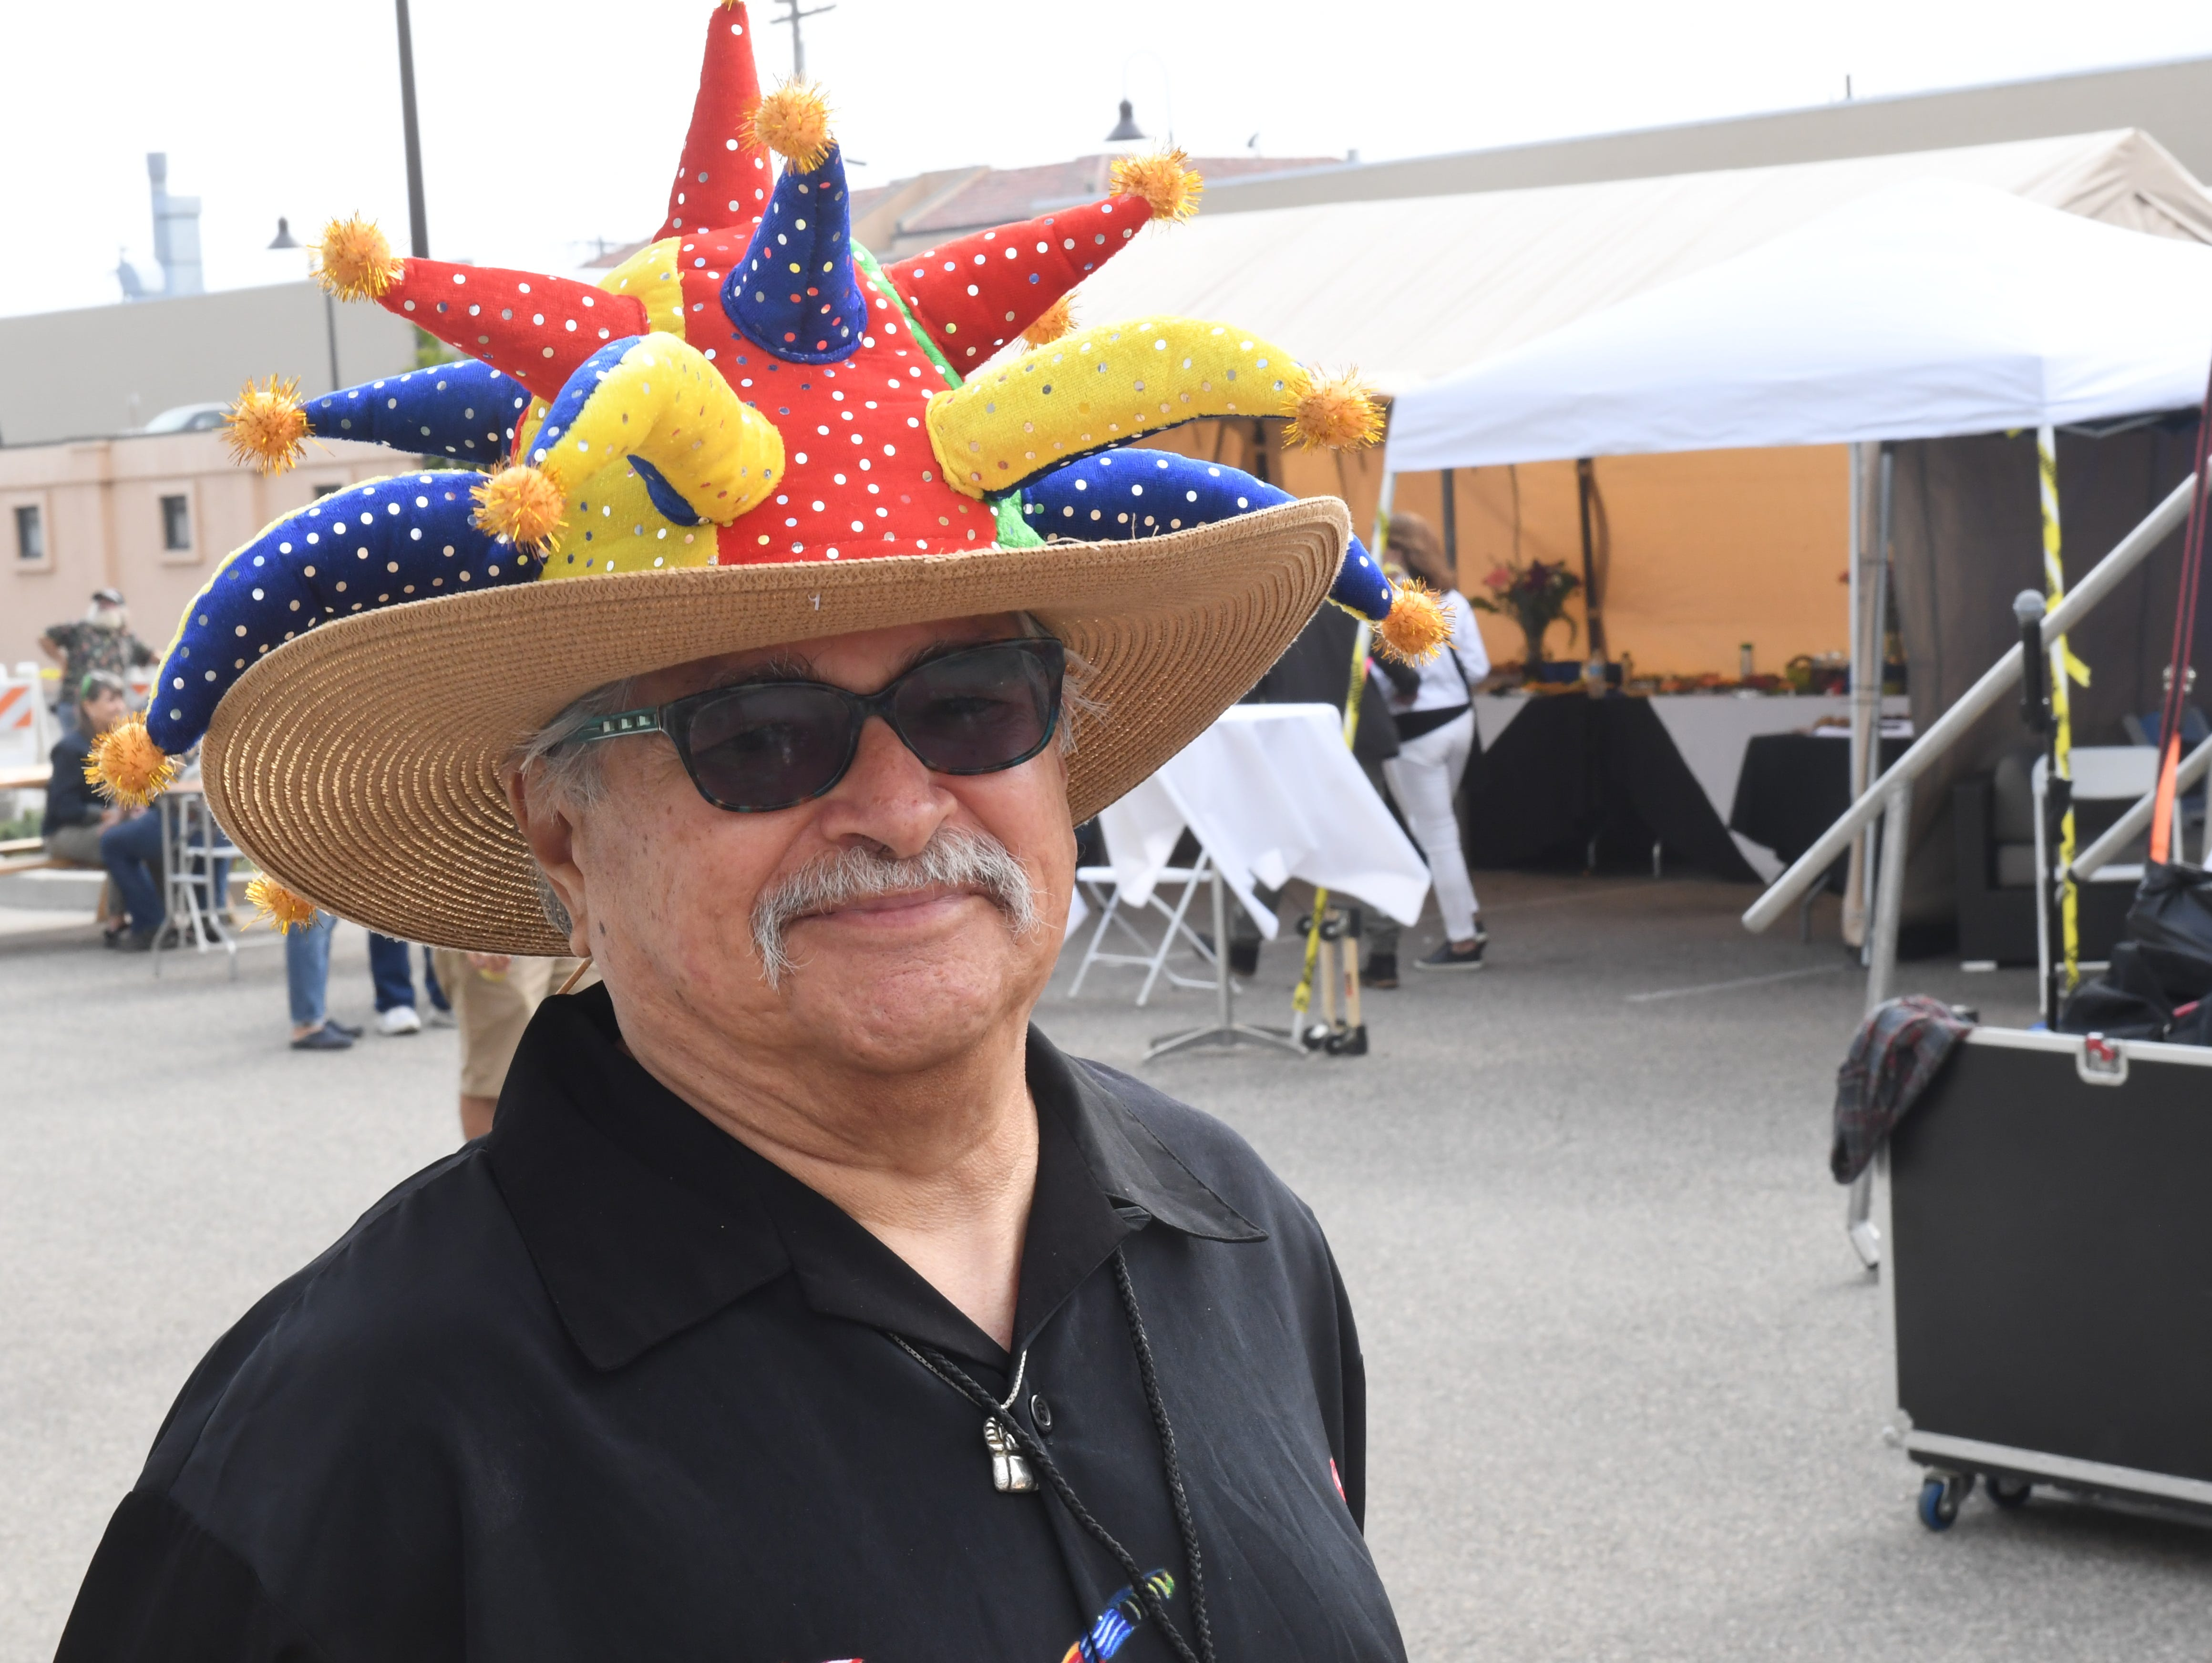 Fred Hernandez, of Pacific Grove, volunteered at the main stage for the 17th annual West End Festival Sunday in Sand City.